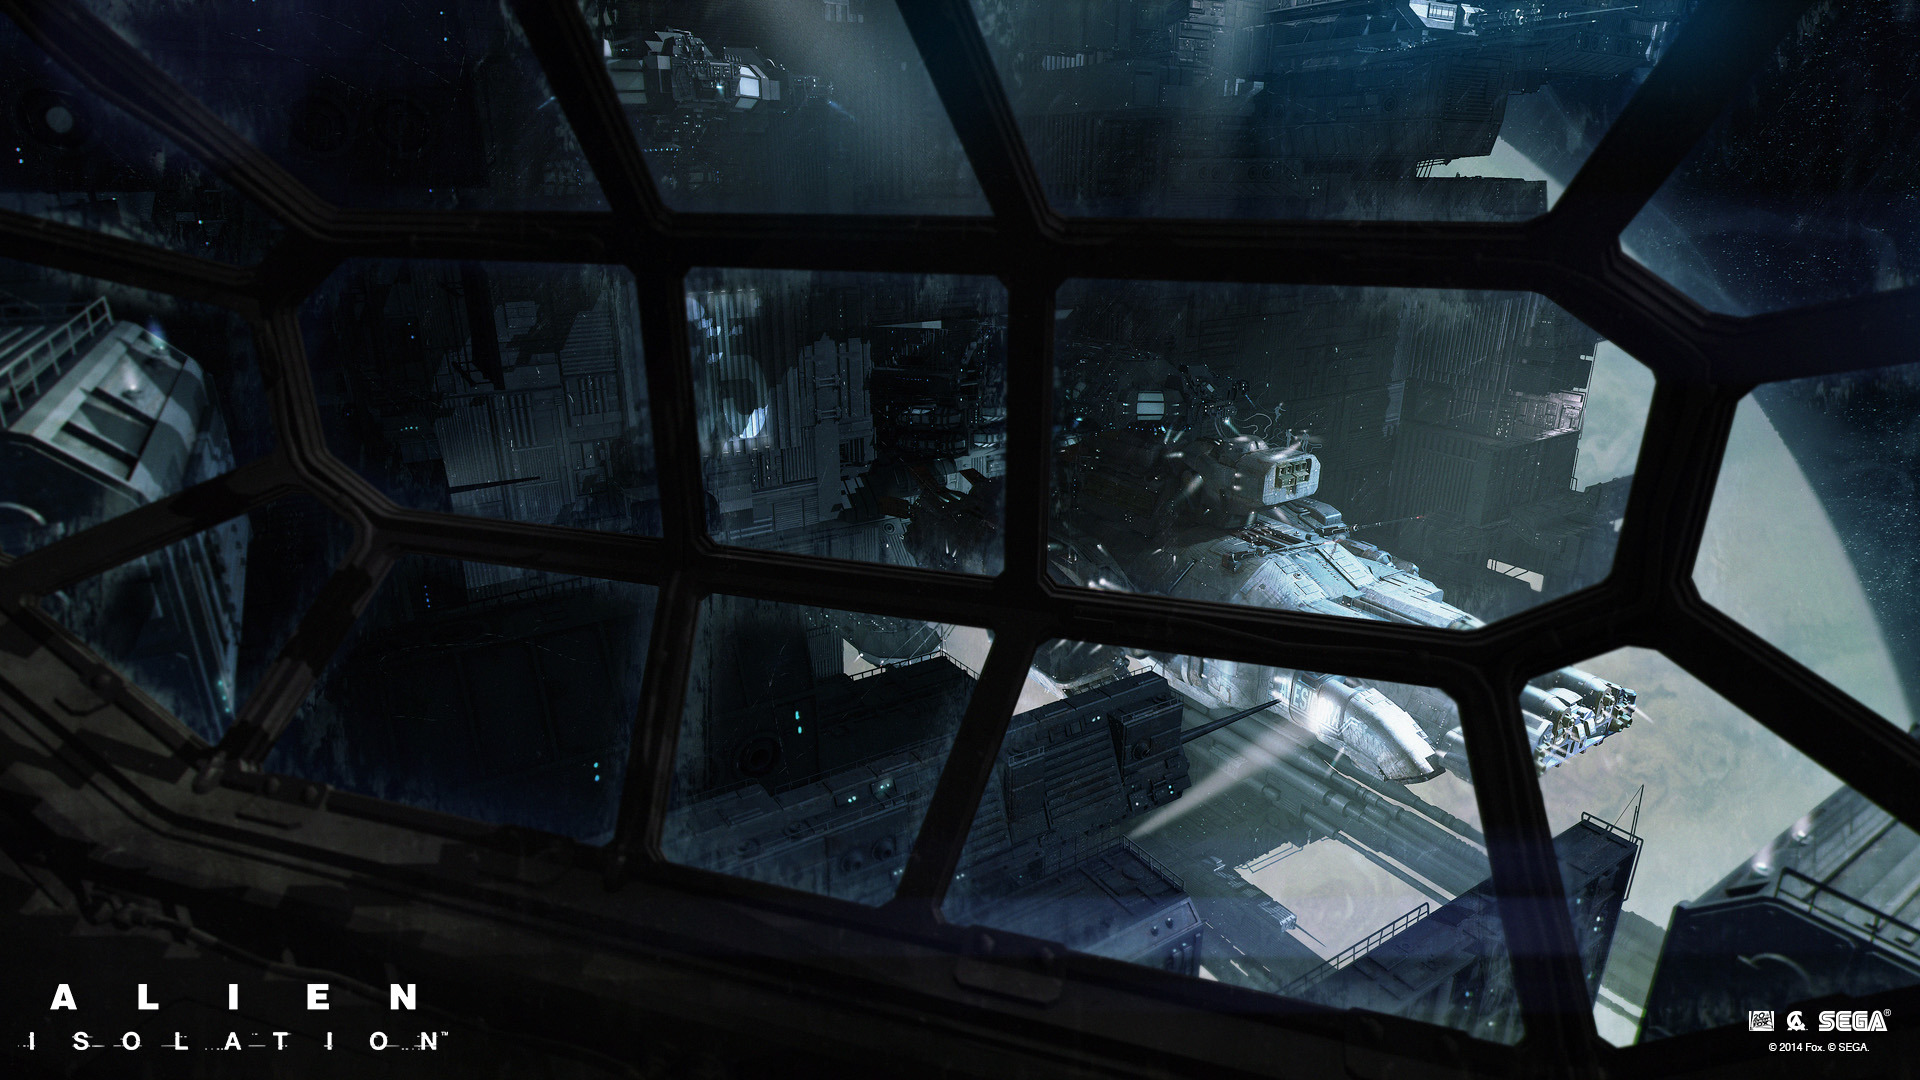 alien: isolation wallpapers screenshots